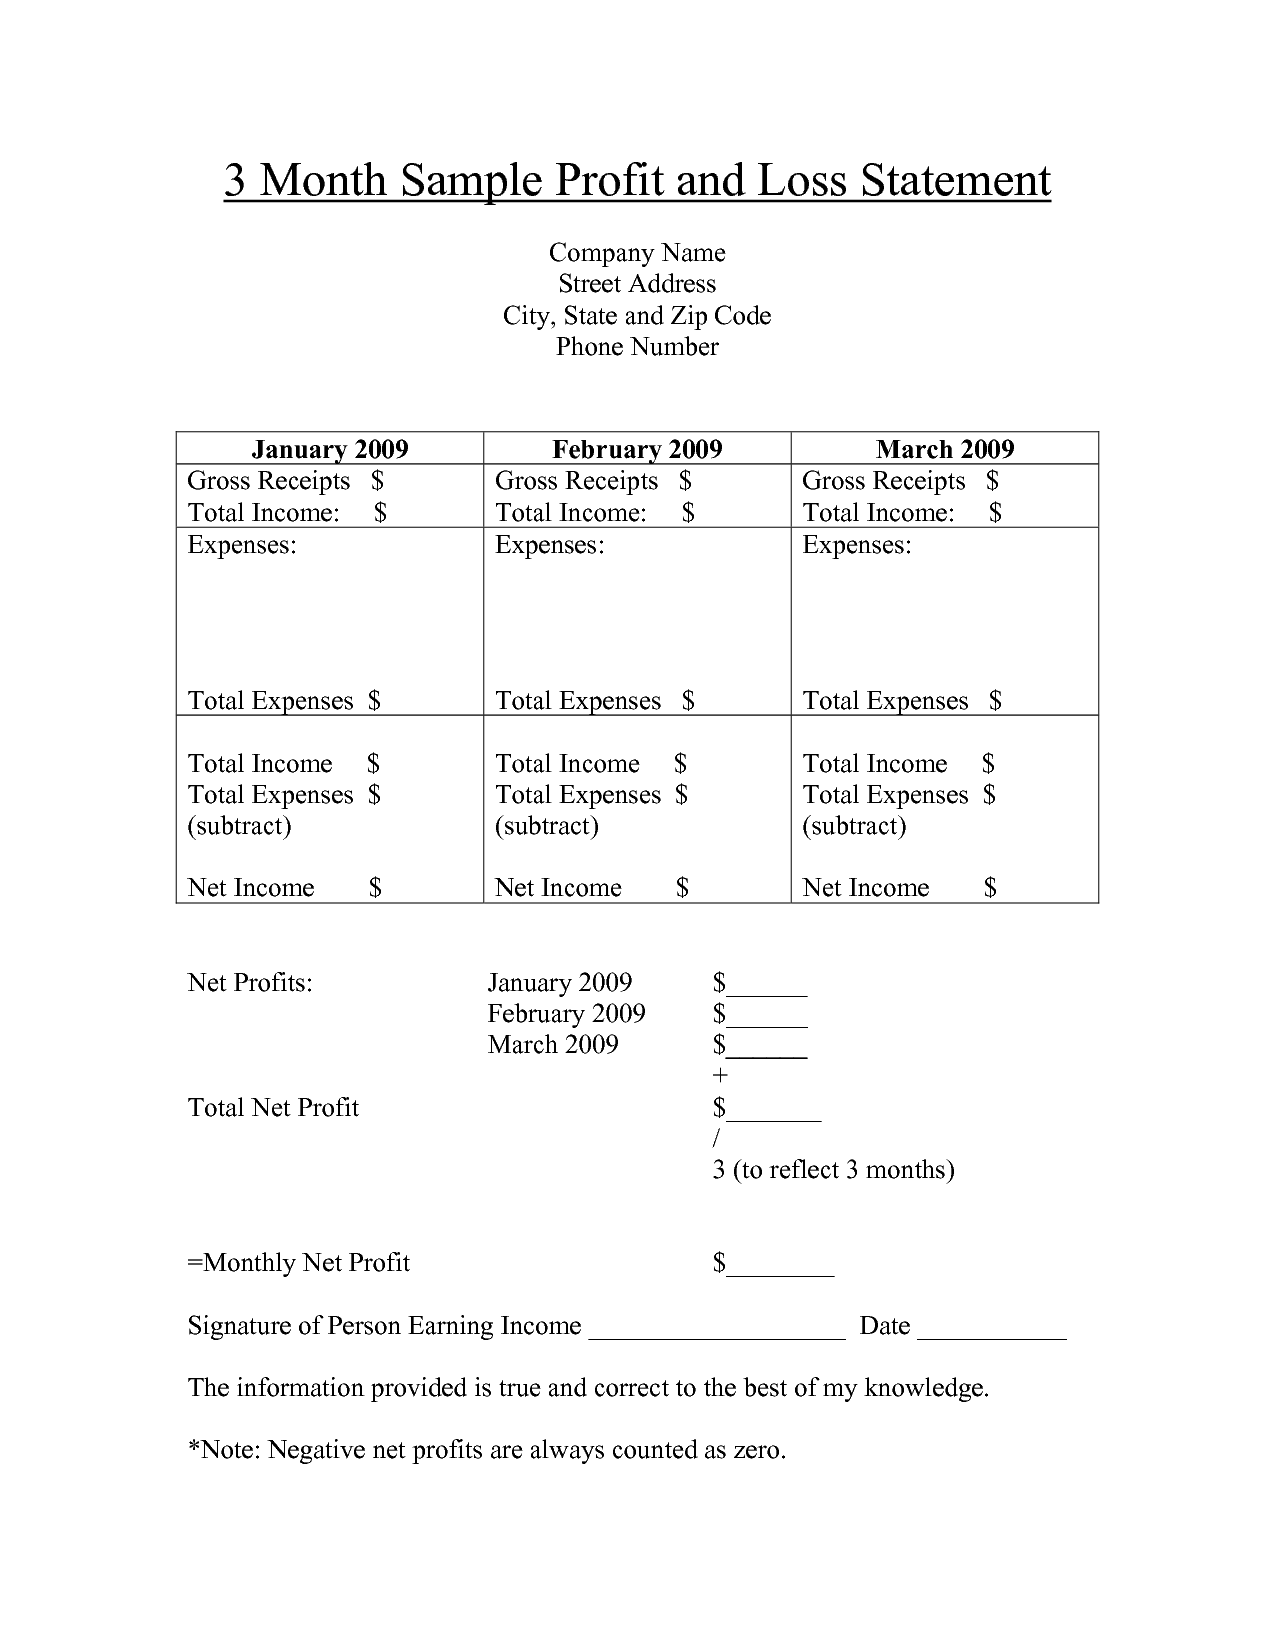 Free Printable Profit And Loss Statement Form For Home Care   Bing Images  Loss And Profit Form